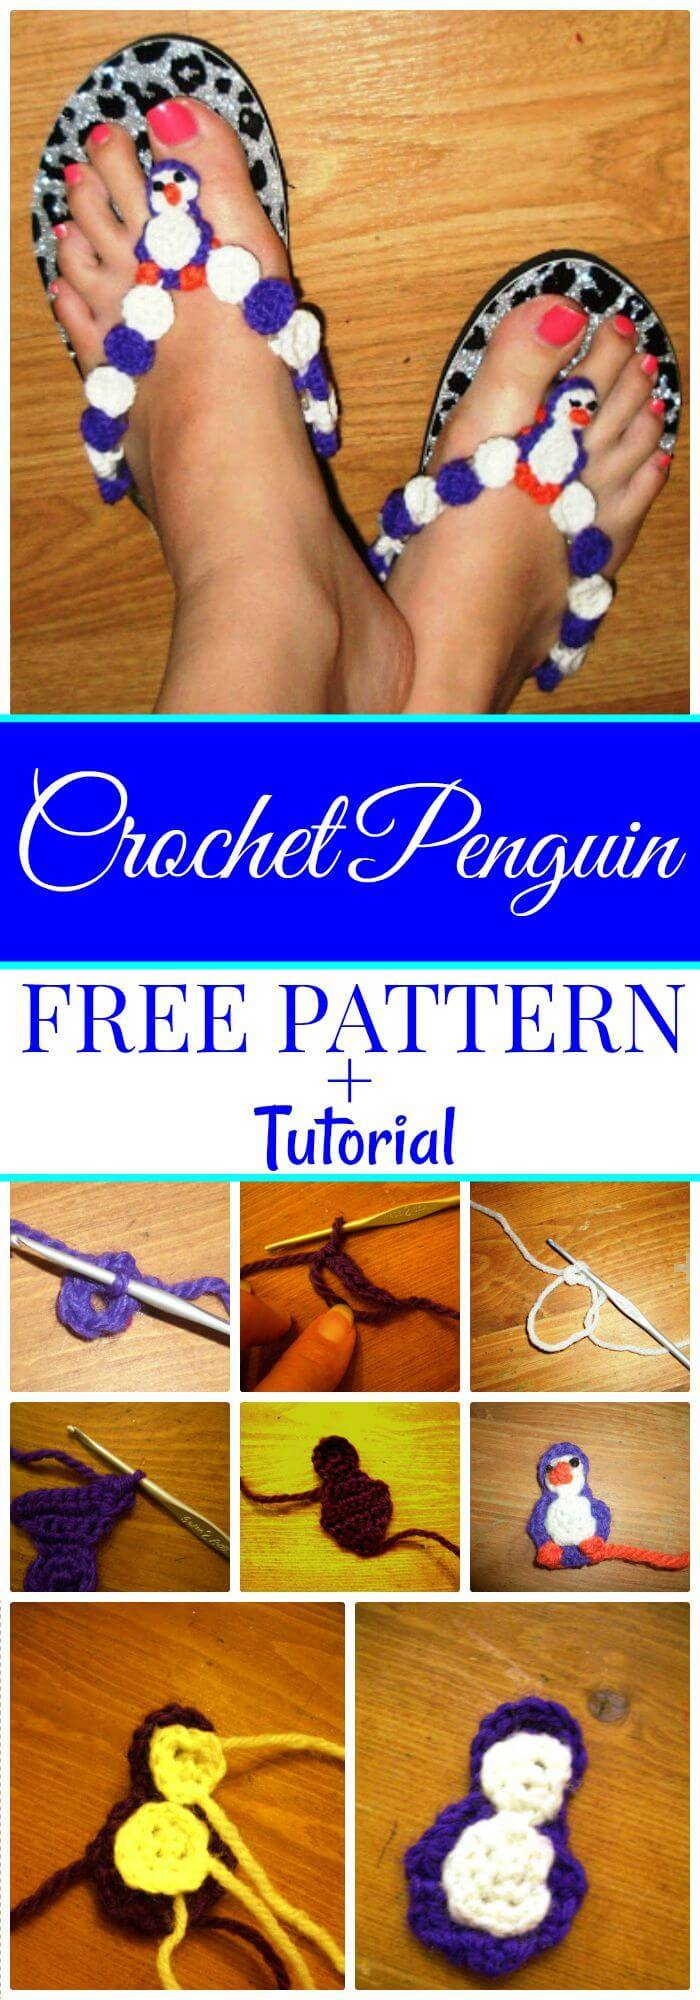 DIY Crochet Penguin Flip Flops baby flip flops crochet pattern for free